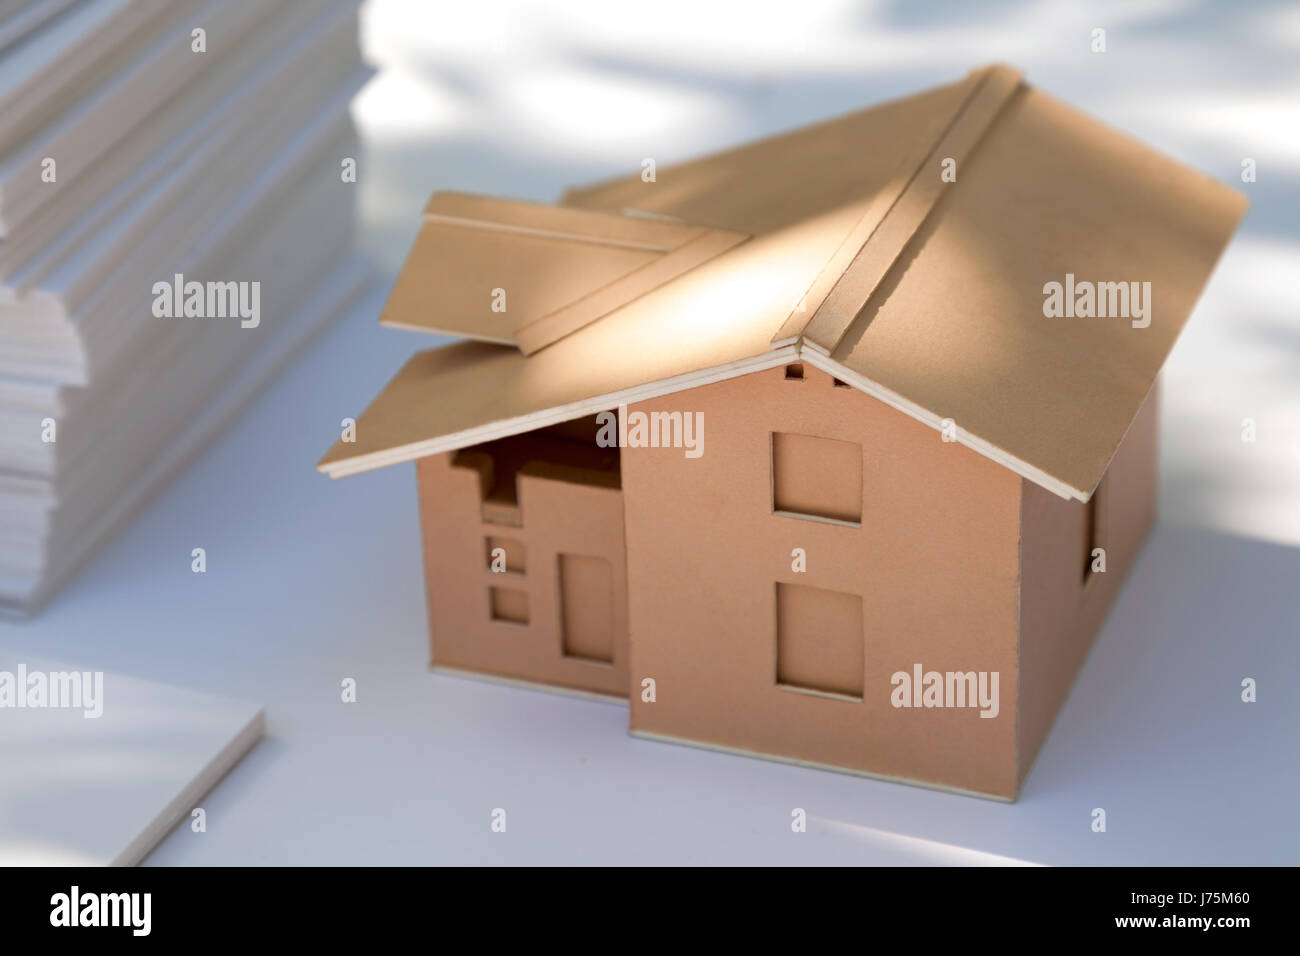 Small cardboard house model on white new home design for for Architecture models for sale